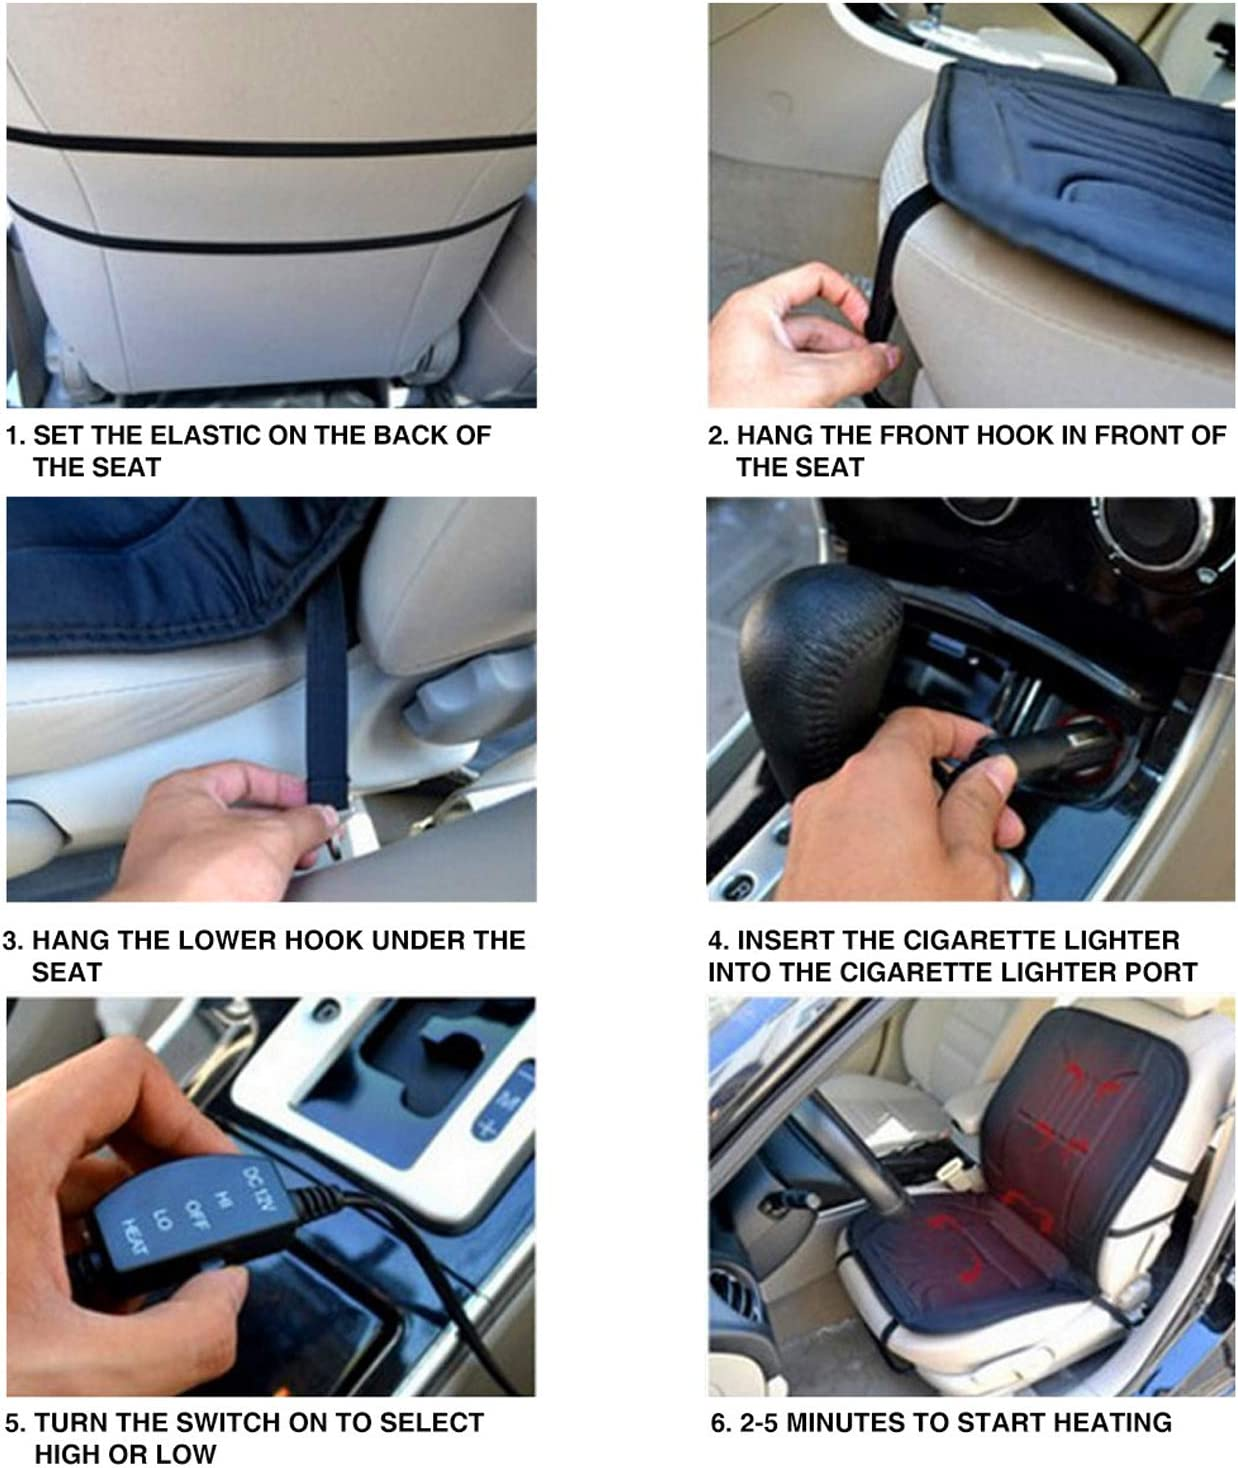 Universal 12V Heated Multifunctional Car Seat Heater Fast Warming for Cold Weather Winter Driving Safer Heated Seat Cover for Car//Truck//Home//Office Chair Use XUELI Heated Car Seat Cushion